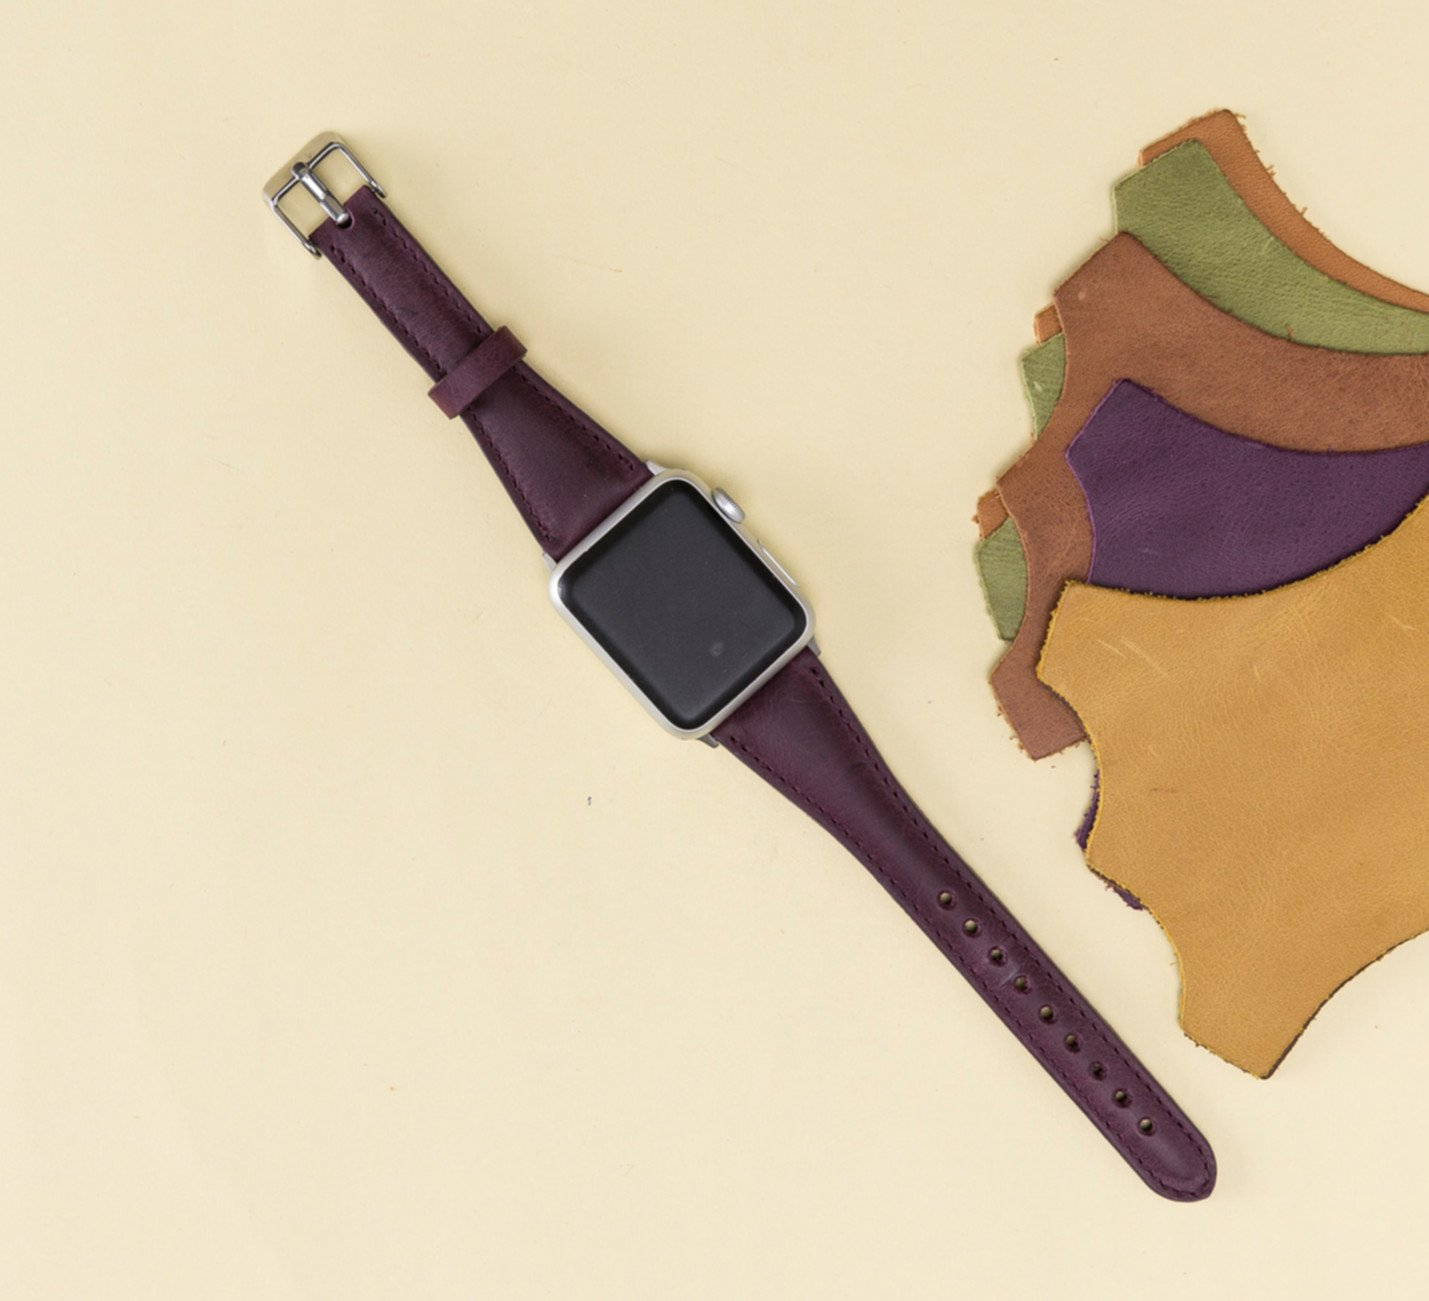 Apple Watch Band for Women, 38mm, 42mm, Purple iWatch Leather Band, Thin Feninine Aplle Watch Band, Genuine Leather Apple Watch Strap